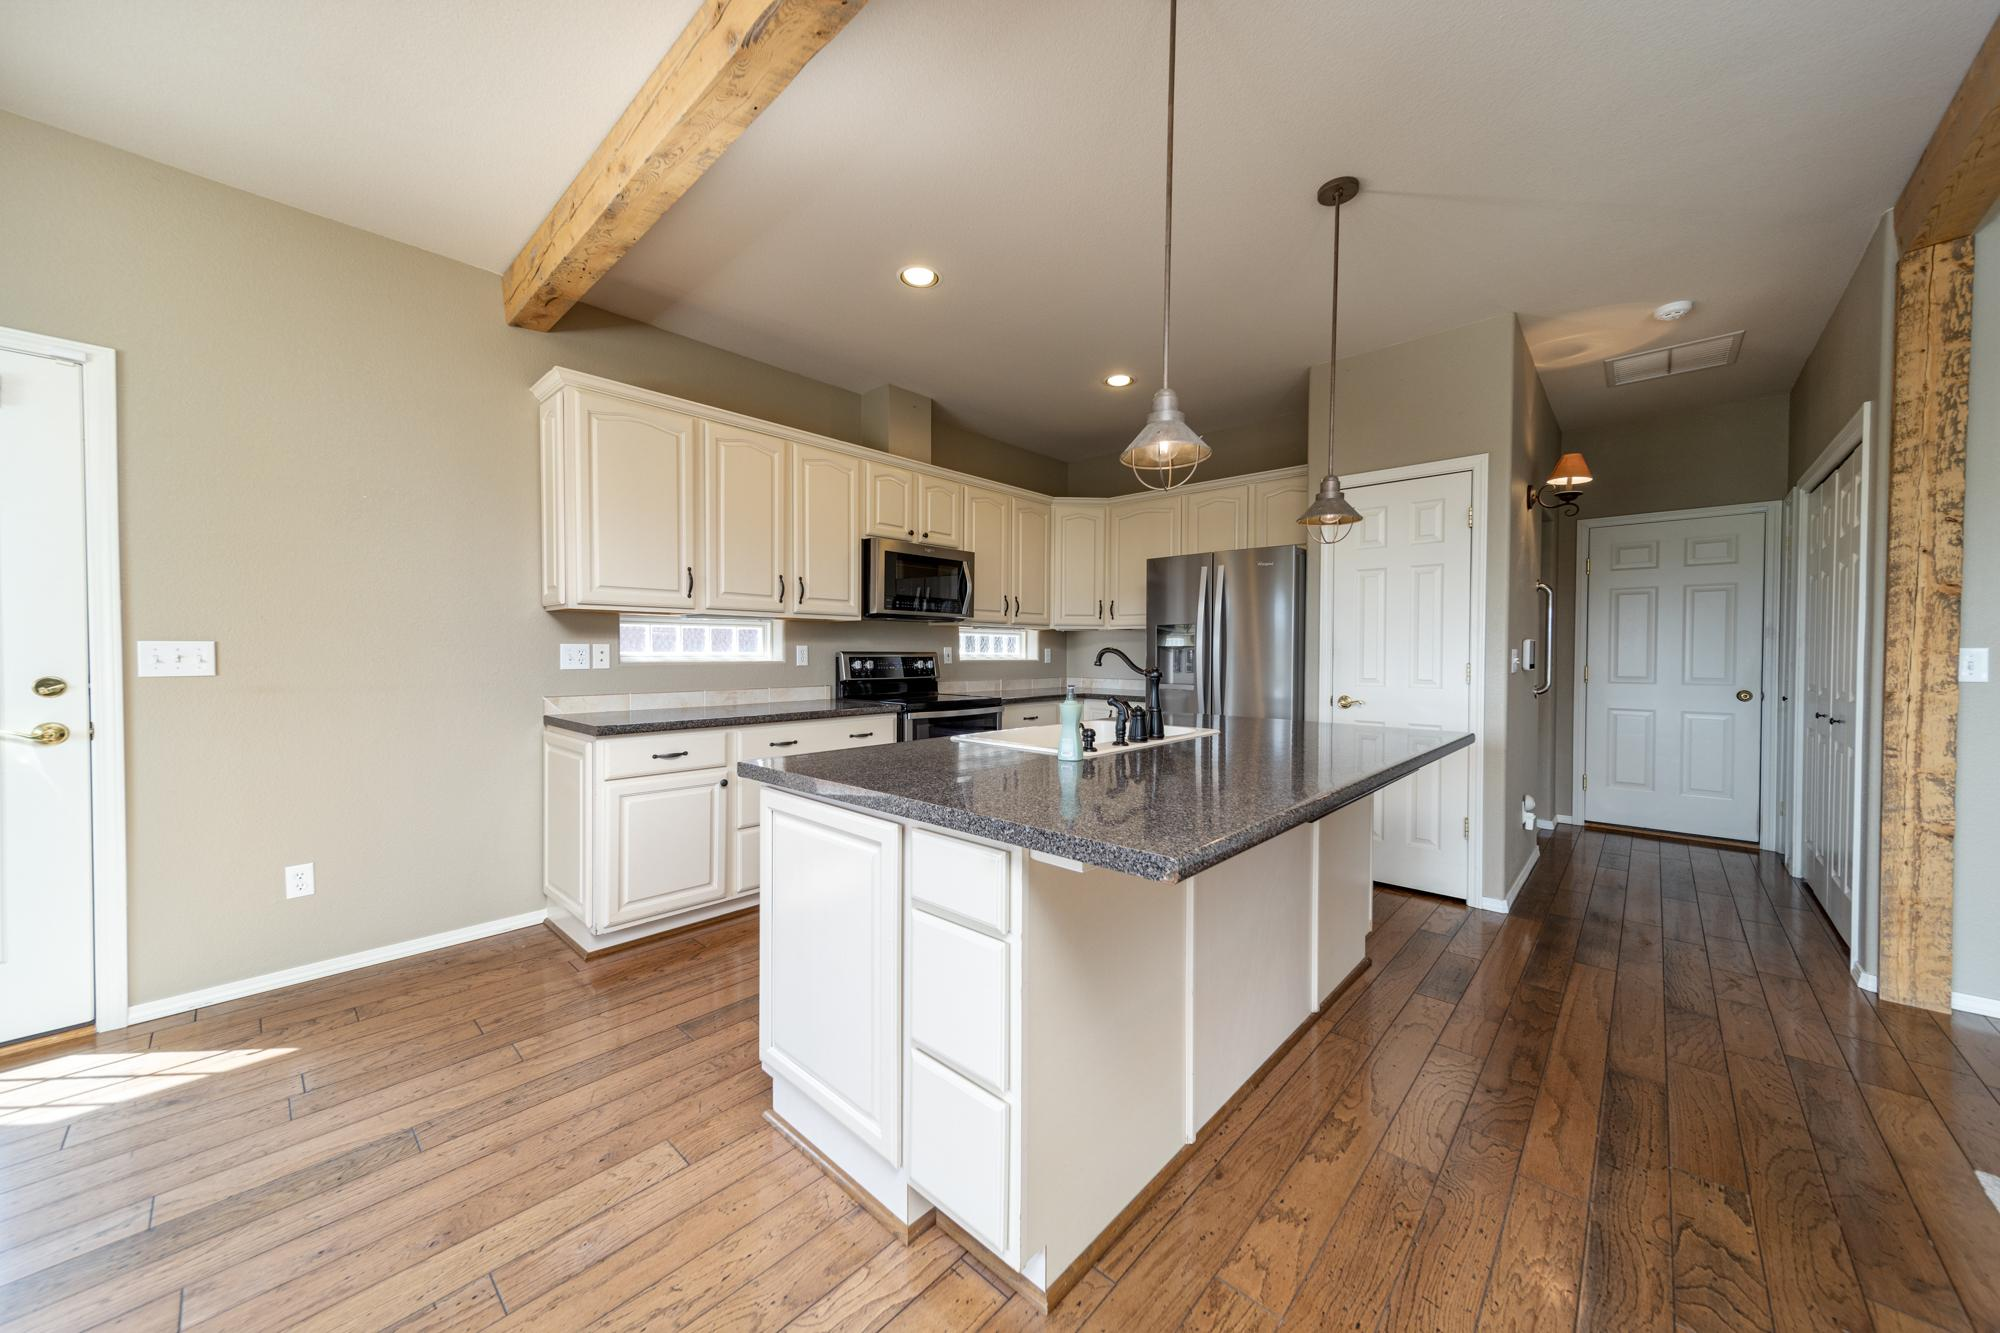 Kitchen with Vaulted Ceiling - 3731 Buffalo Ln Montrose, CO 81403 - Atha Team Golf Property